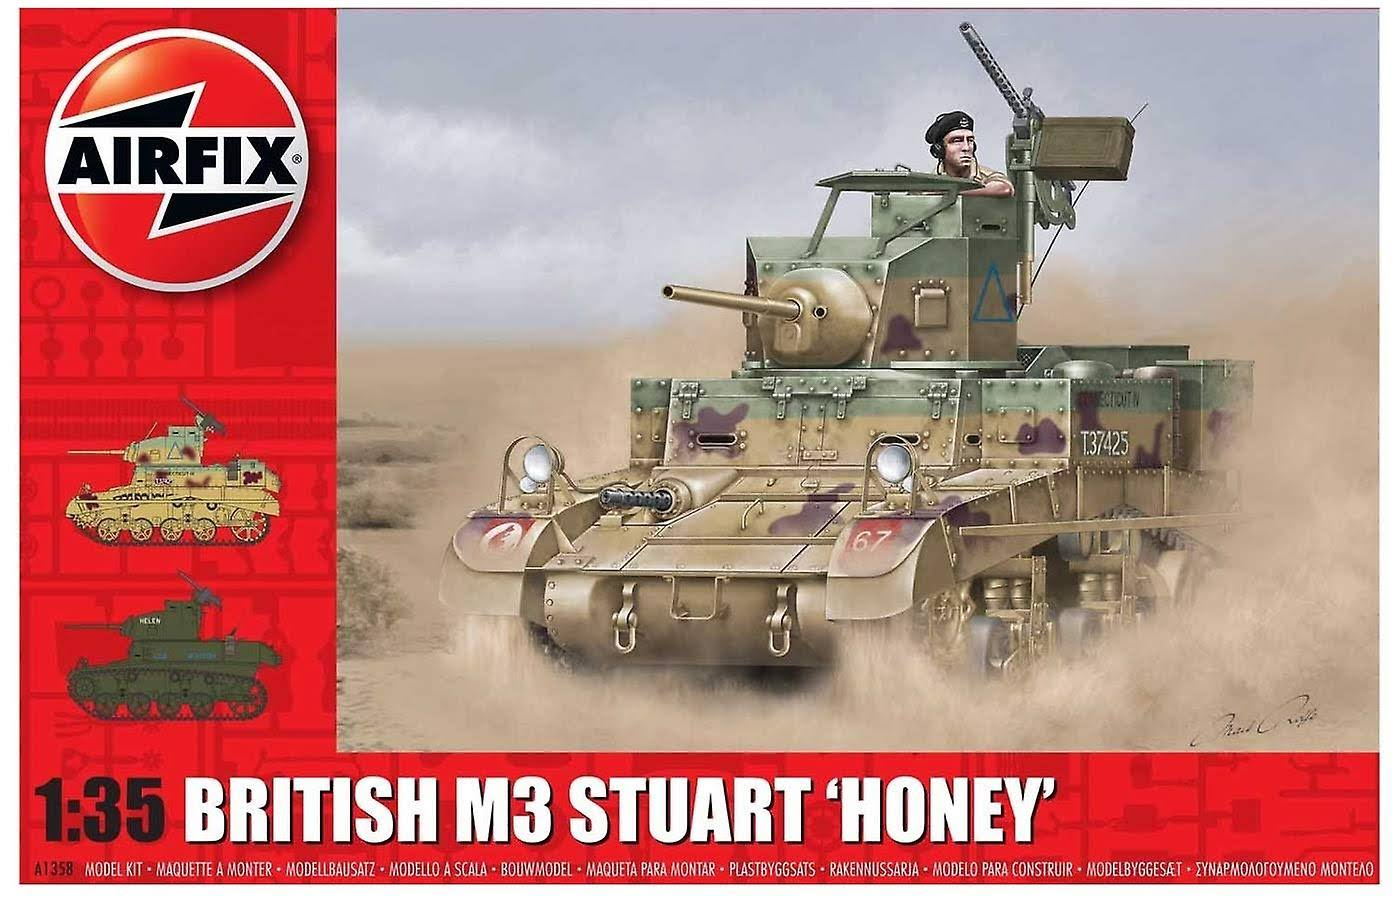 Airfix A1358 M3 Stuart Honey (British Version) 1:35 Tank Model Kit